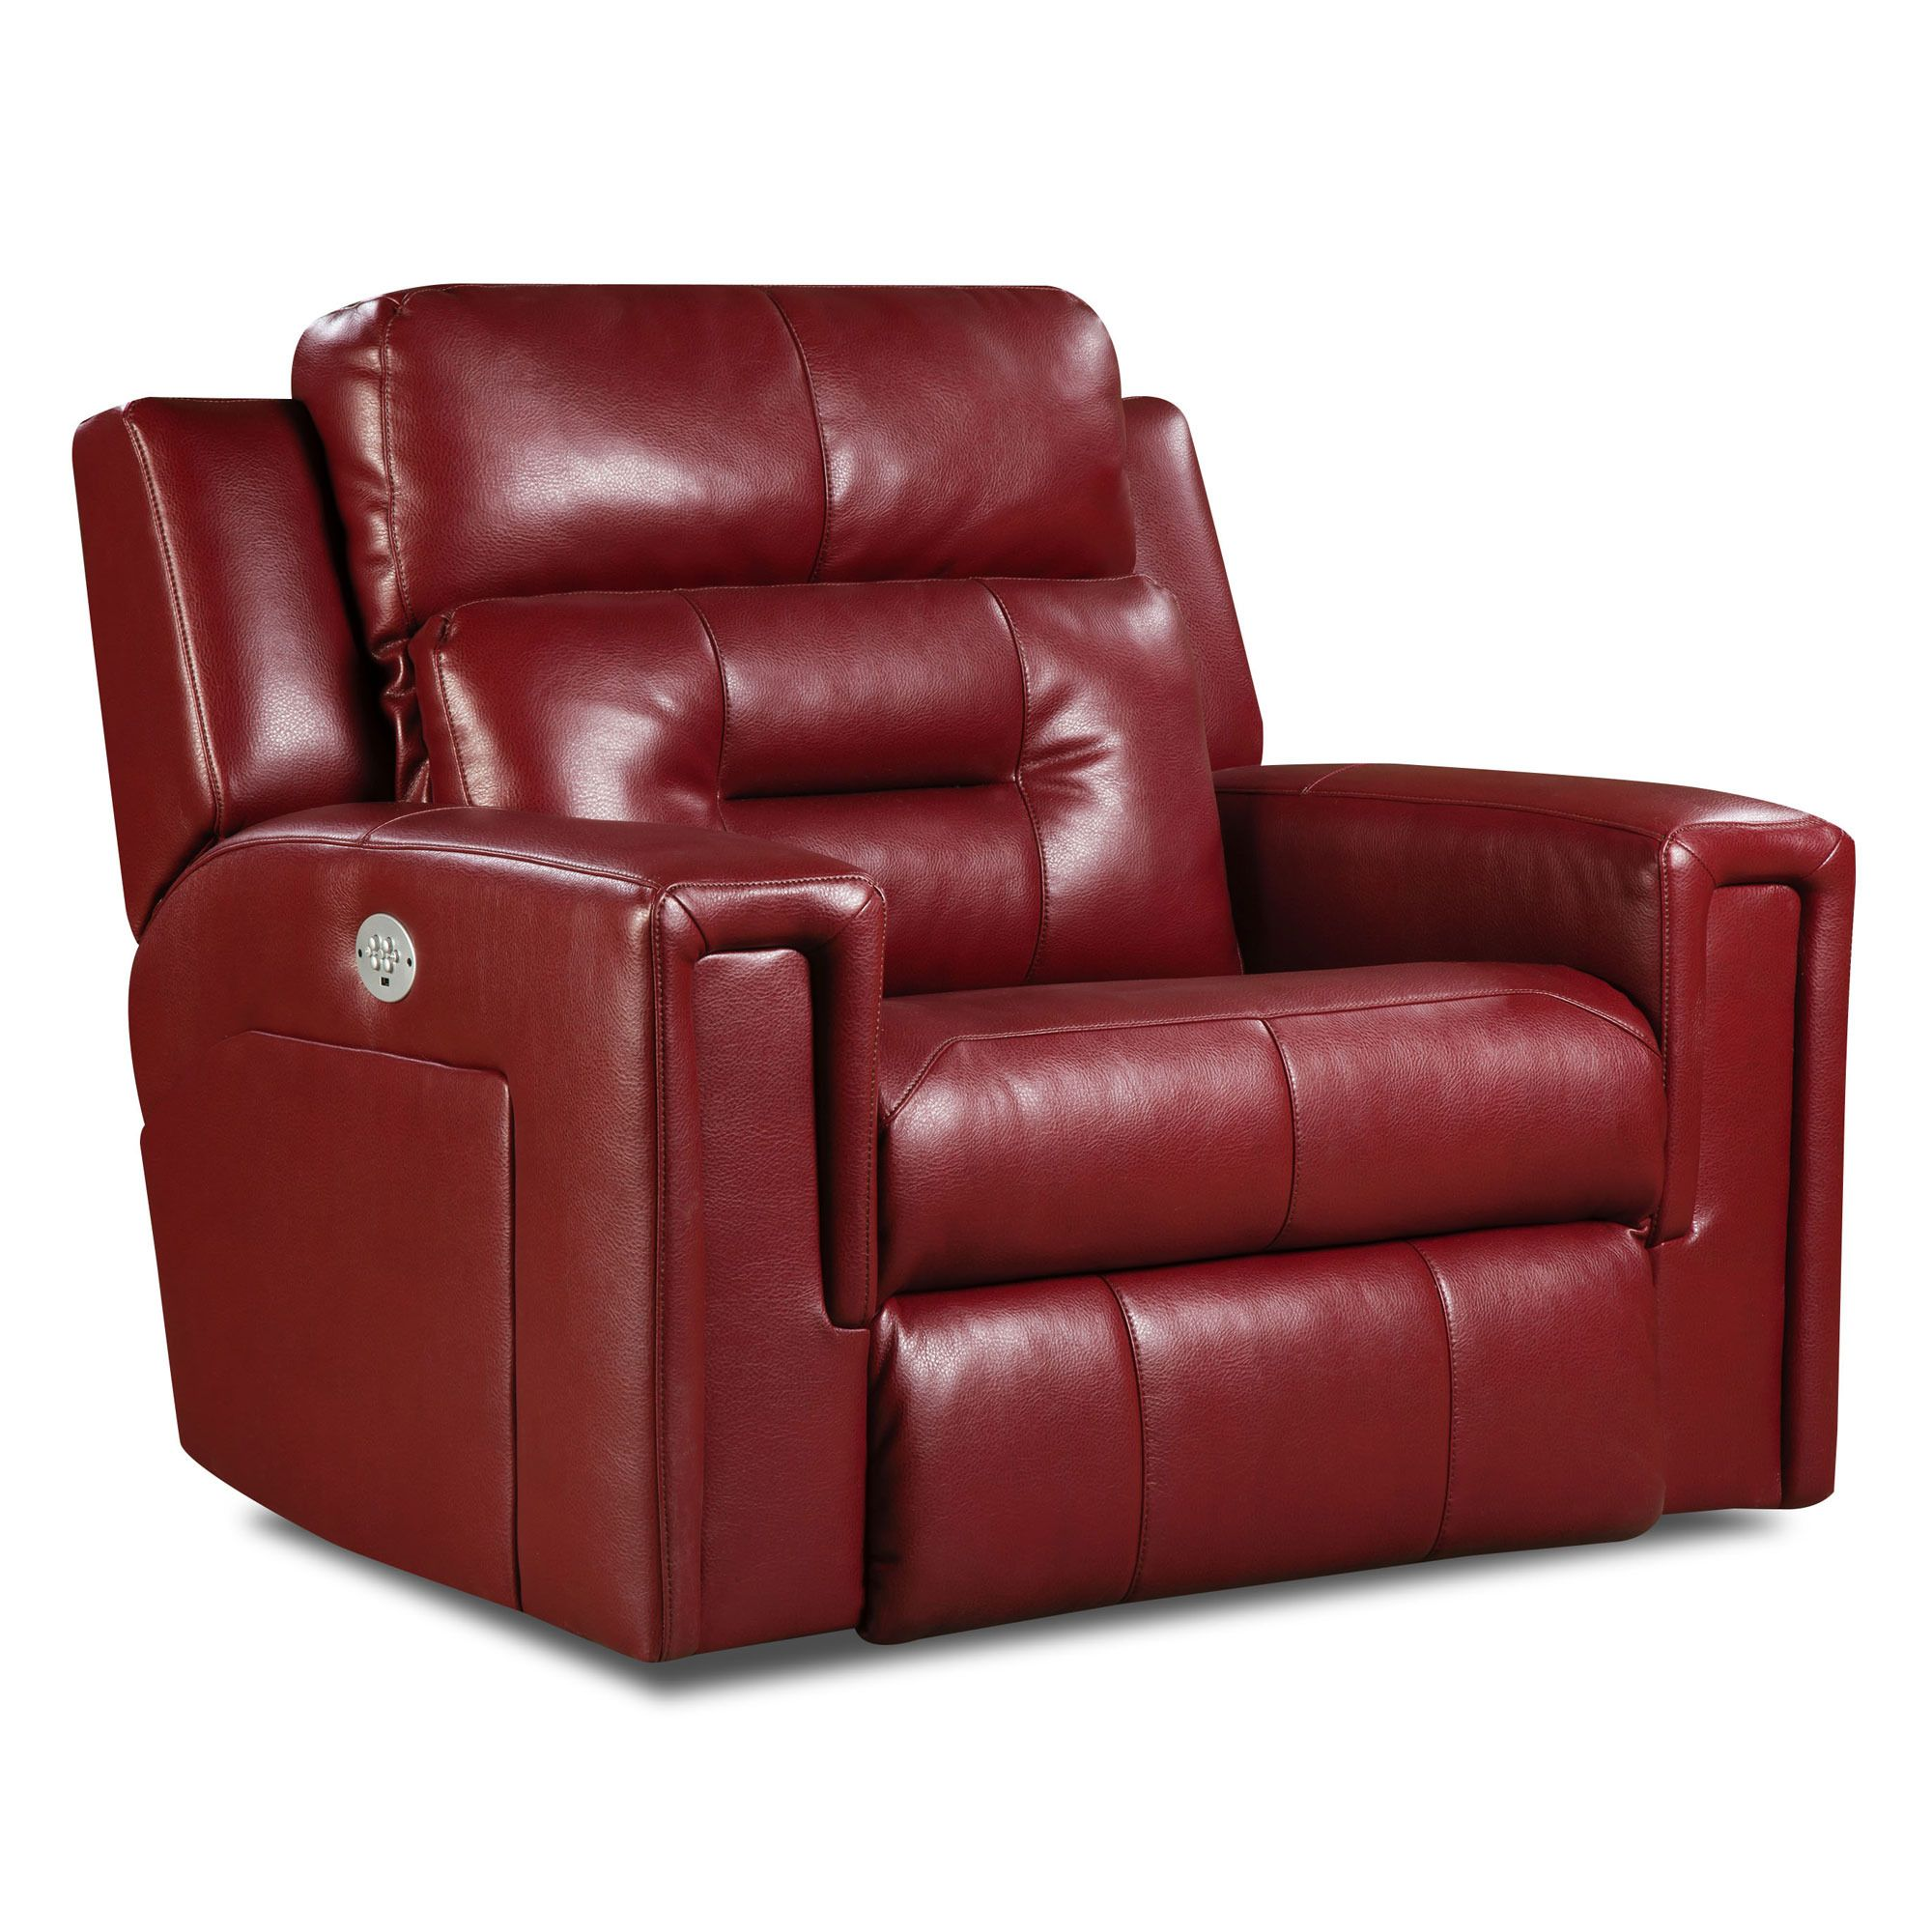 Excel Chair 1 2 Recliner Southern Motion Furniture Home Gallery Stores Southern Motion Wall Hugger Recliners Chair And A Half